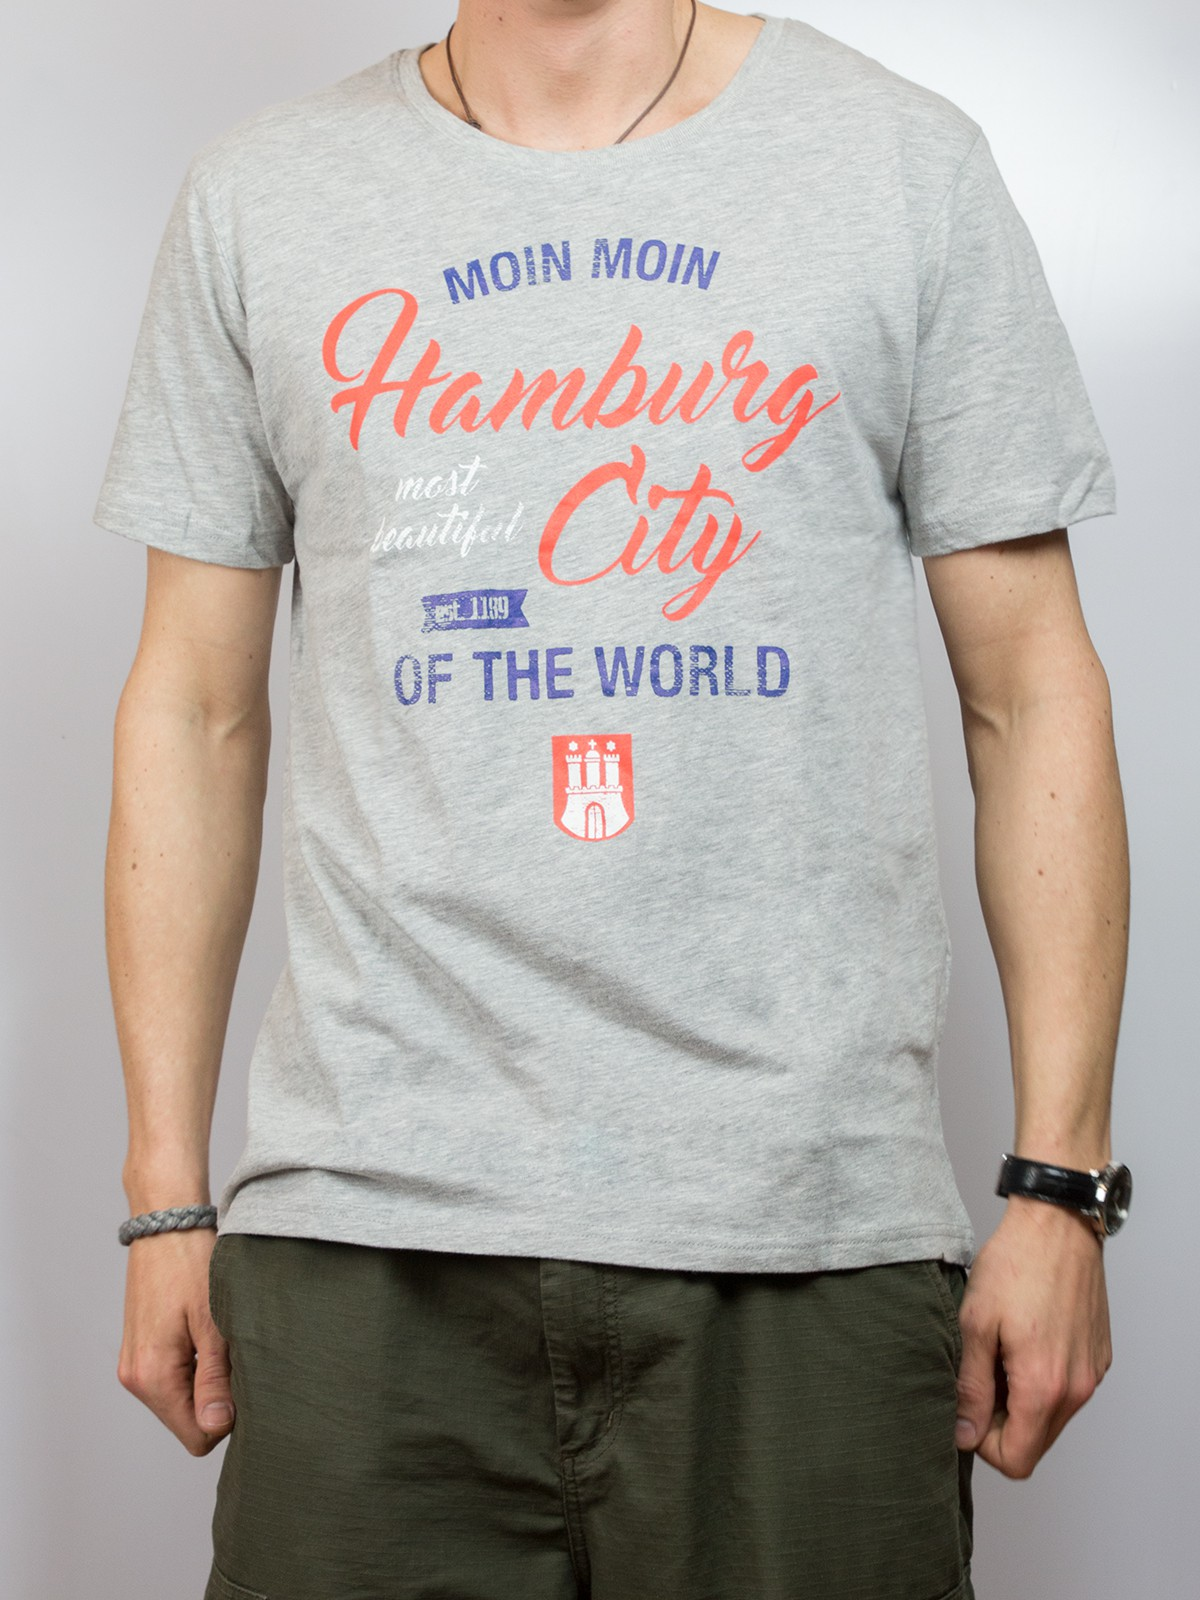 T-Shirt - Moin Moin Hamburg City